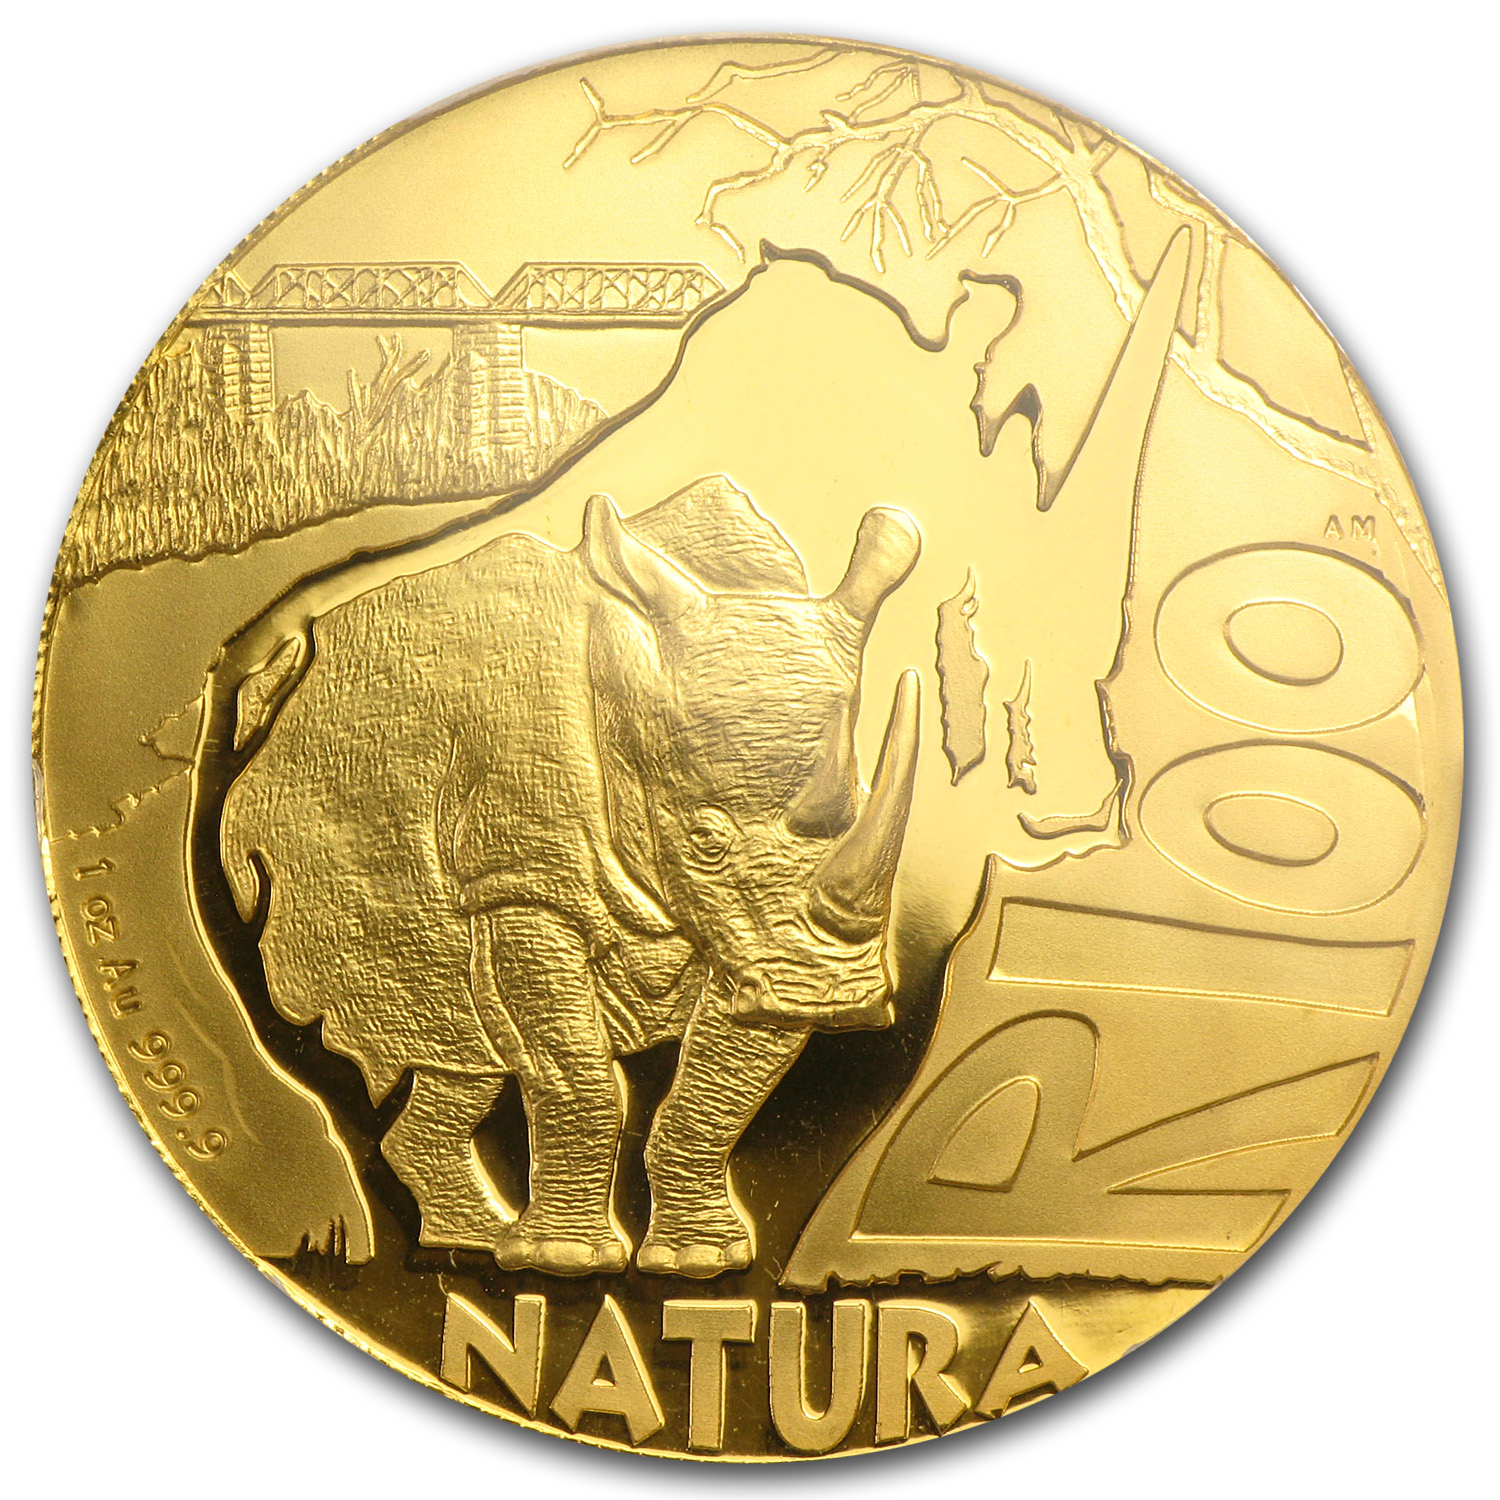 2009 South Africa 1 oz Gold Natura White Rhino PR-69 PCGS